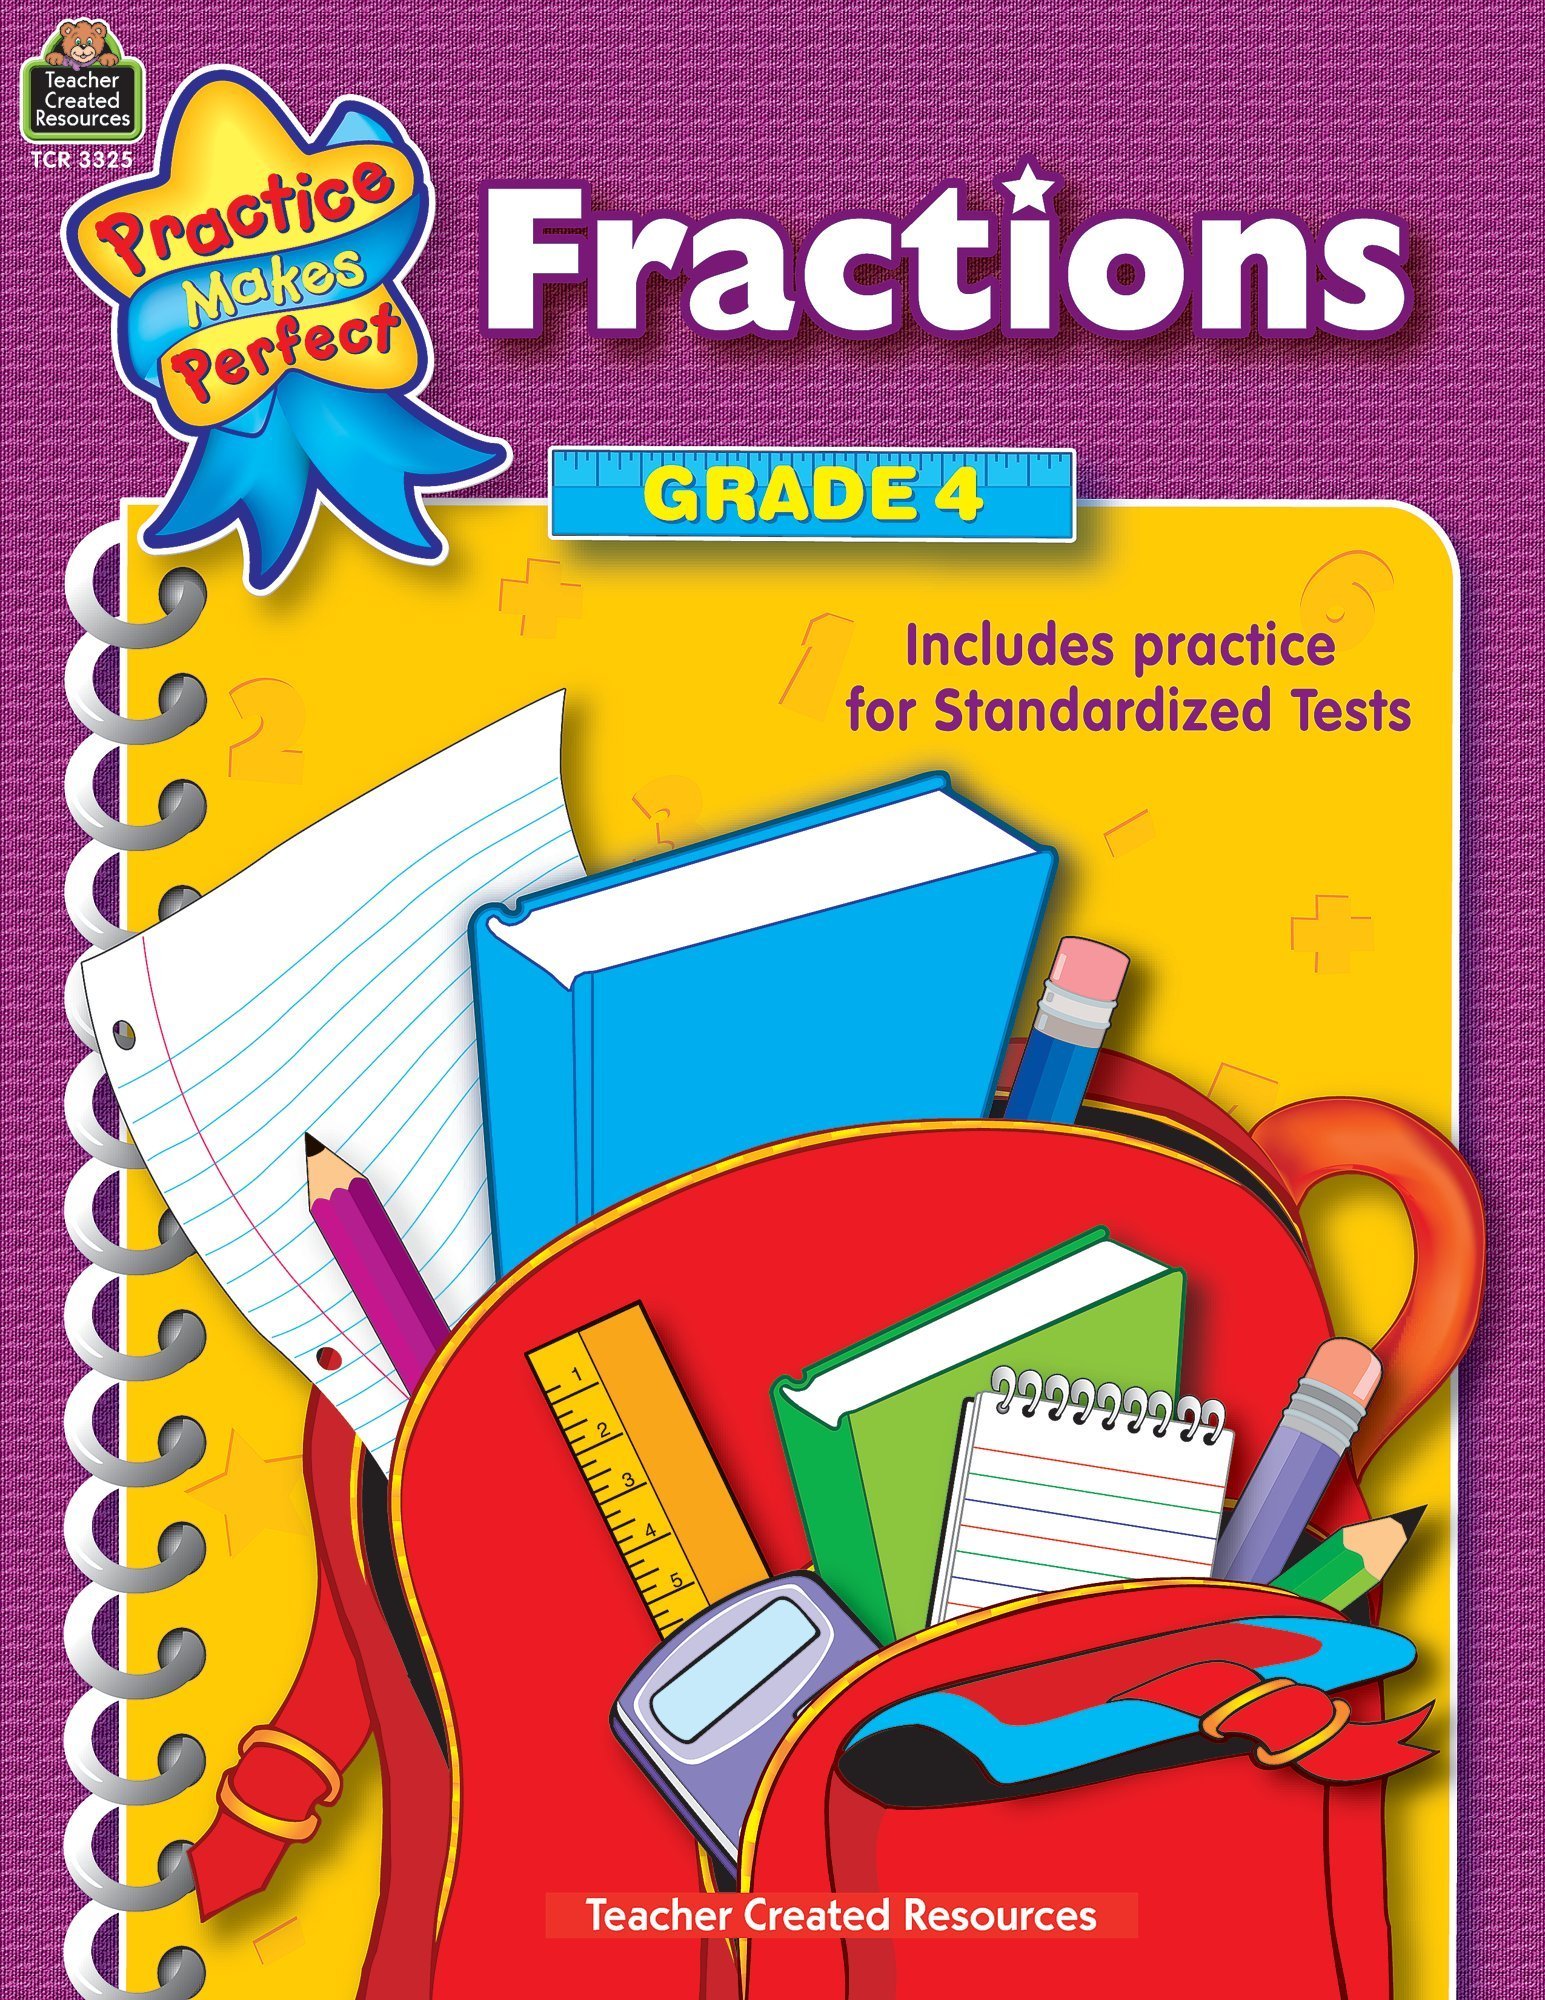 Amazon.com: Fractions Grade 4 (Practice Makes Perfect) (0014467033259): Teacher  Created Resources Staff: Books